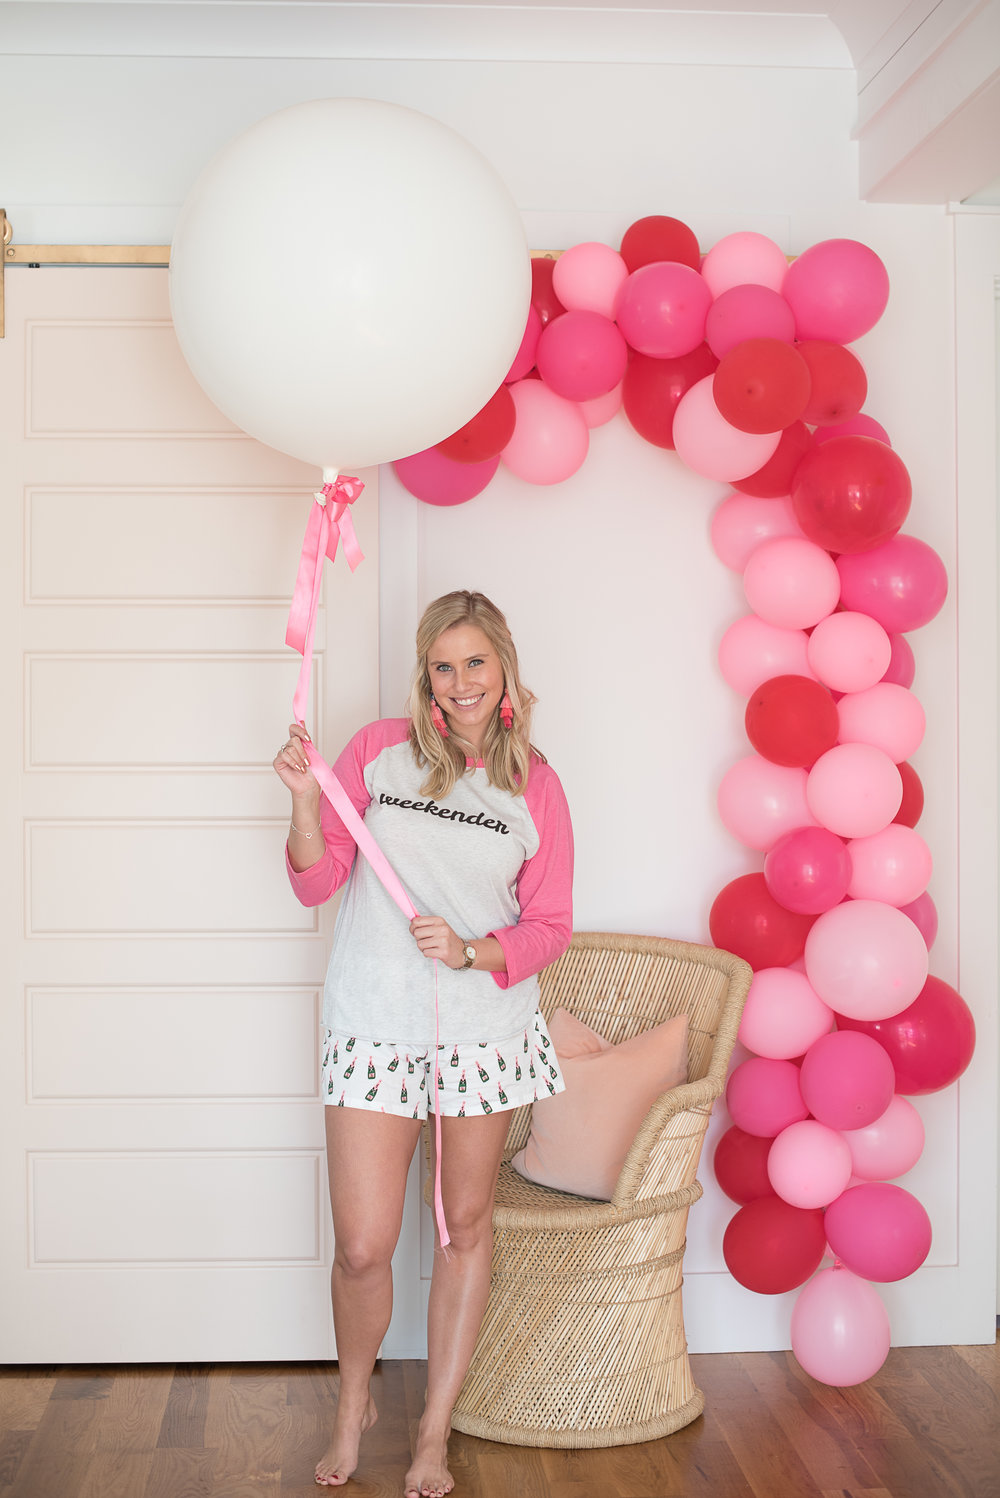 Pink, white and red balloon arch for Valentines Day from Cannonborough Collective  //  designed by Liz Martin of The Charleston Weekend  //  on A Lowcountry Wedding Magazine